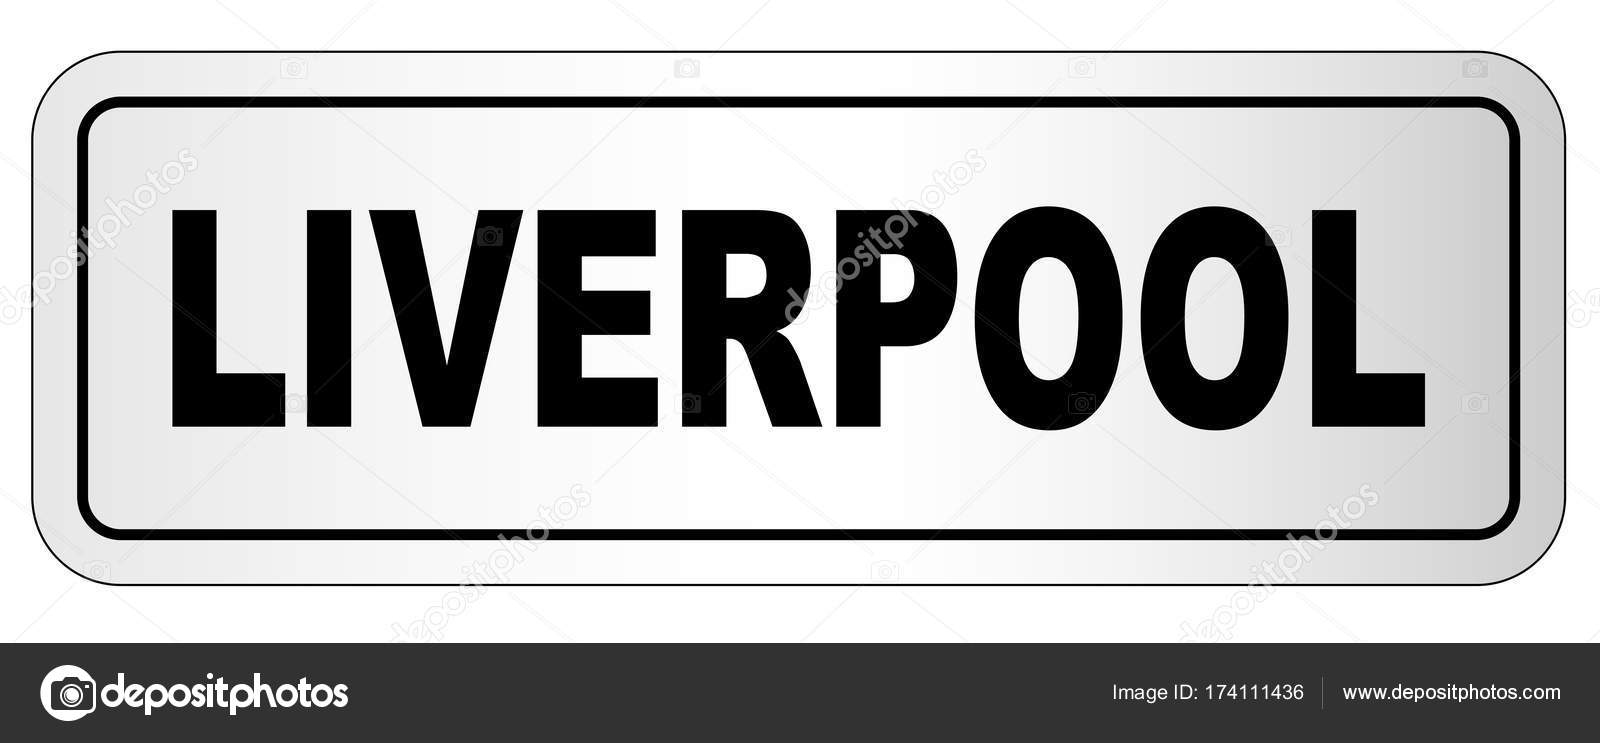 Liverpool City Nameplate — Stock Vector © BigAlBaloo #174111436